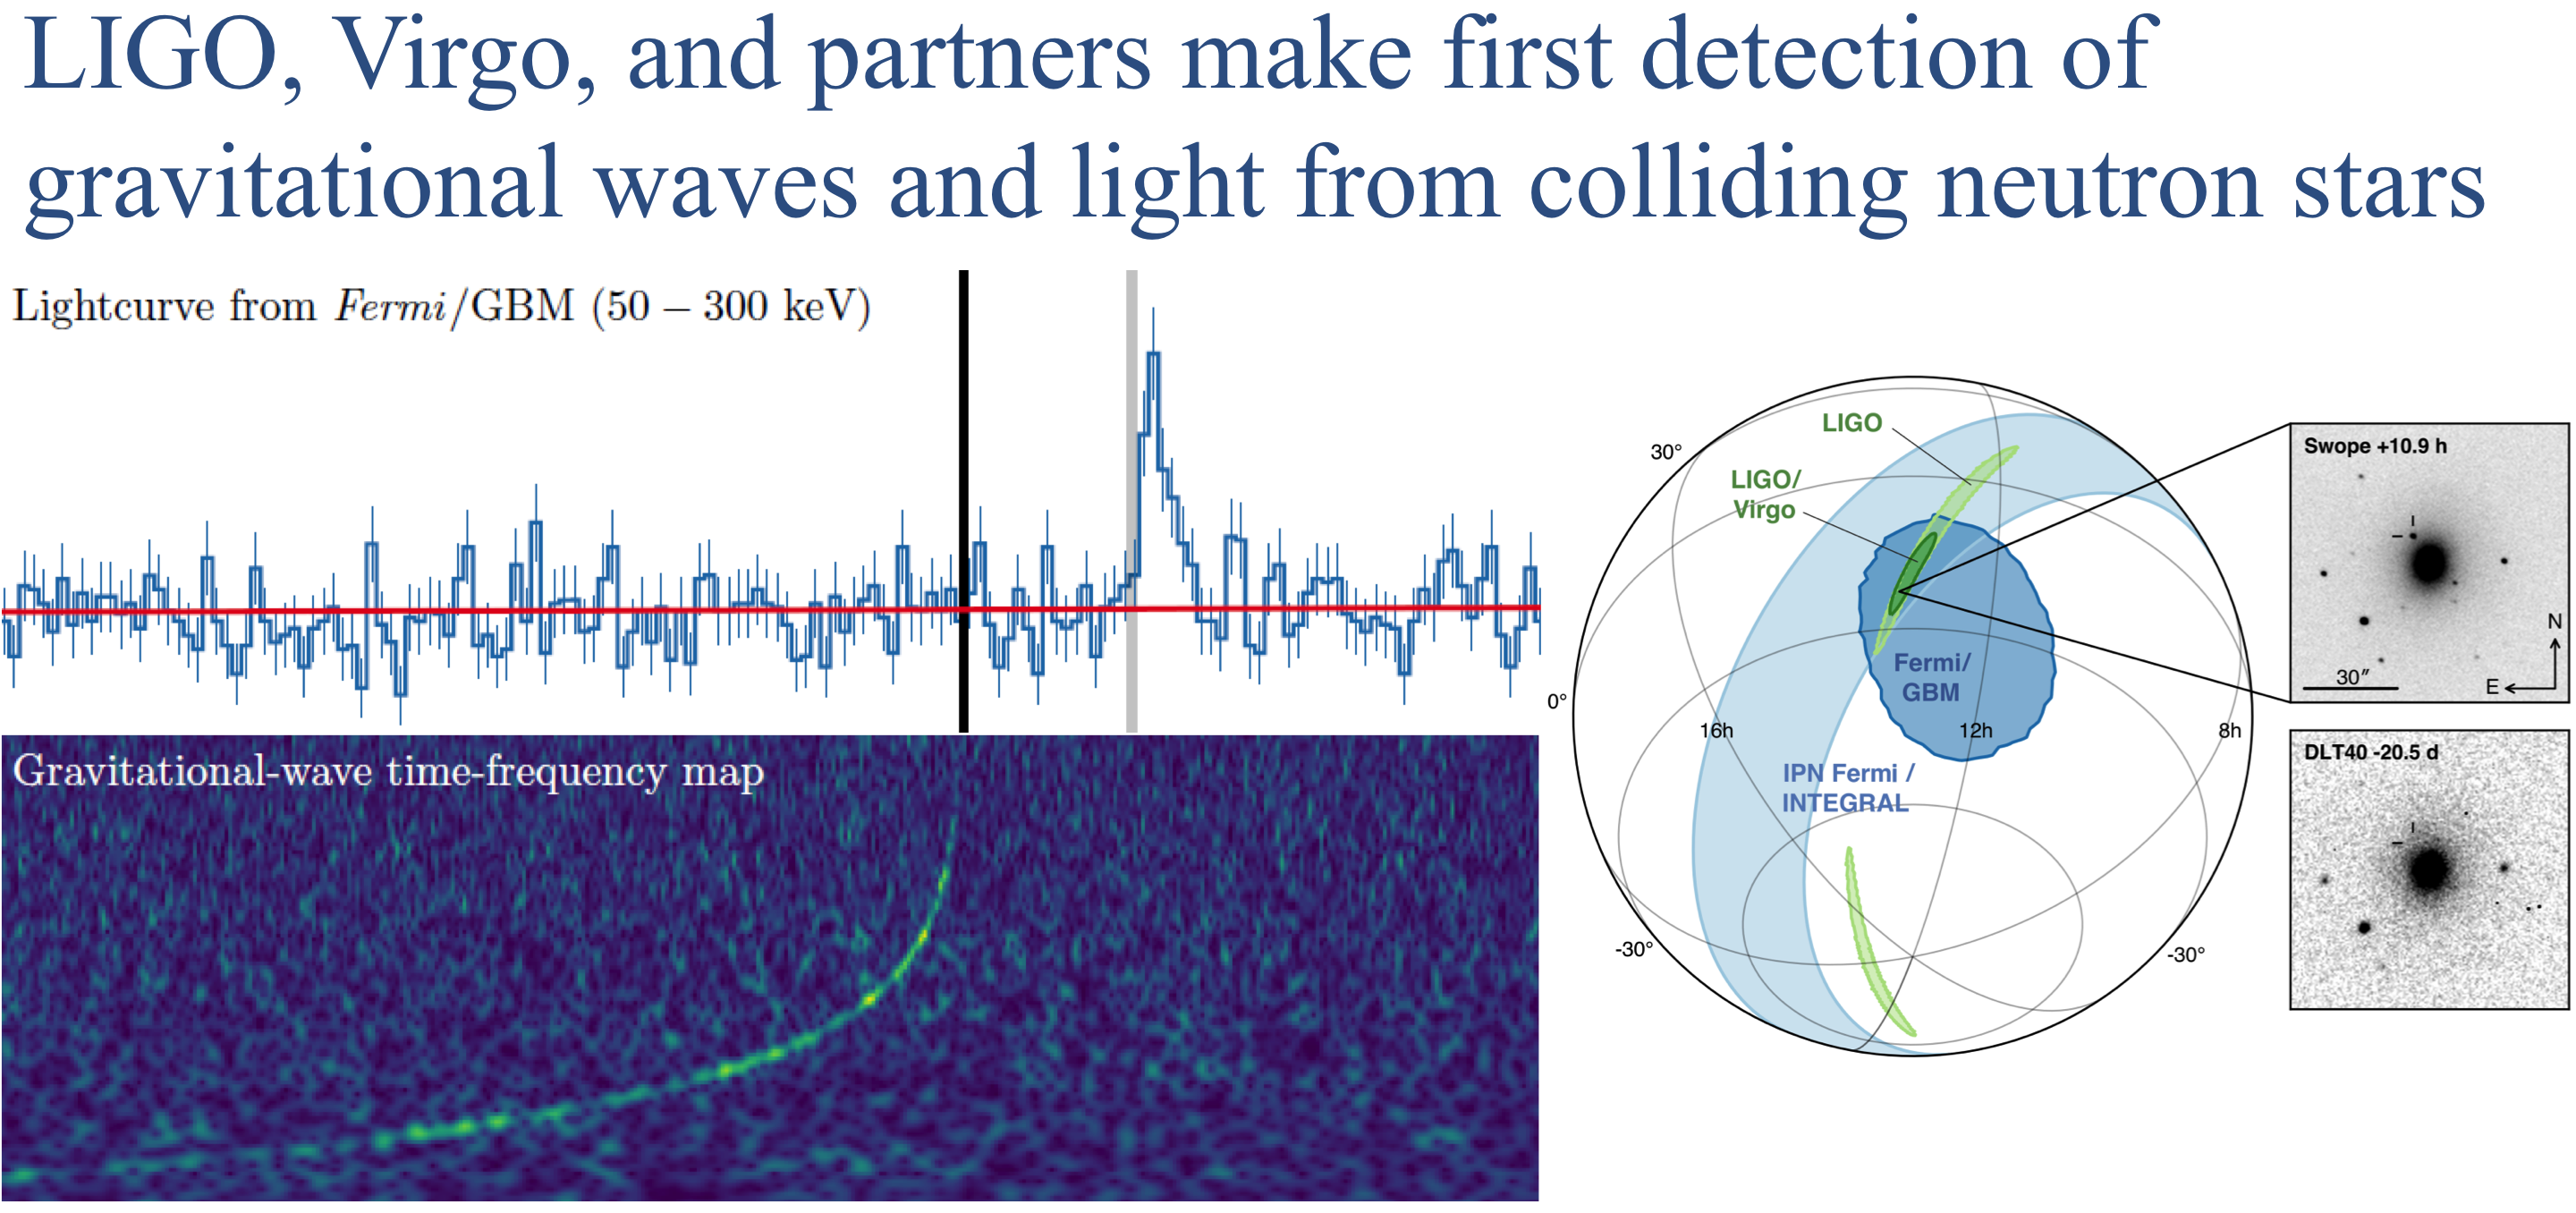 LIGO, Virgo, and partners make first detection of gravitational waves and light from colliding neutron stars